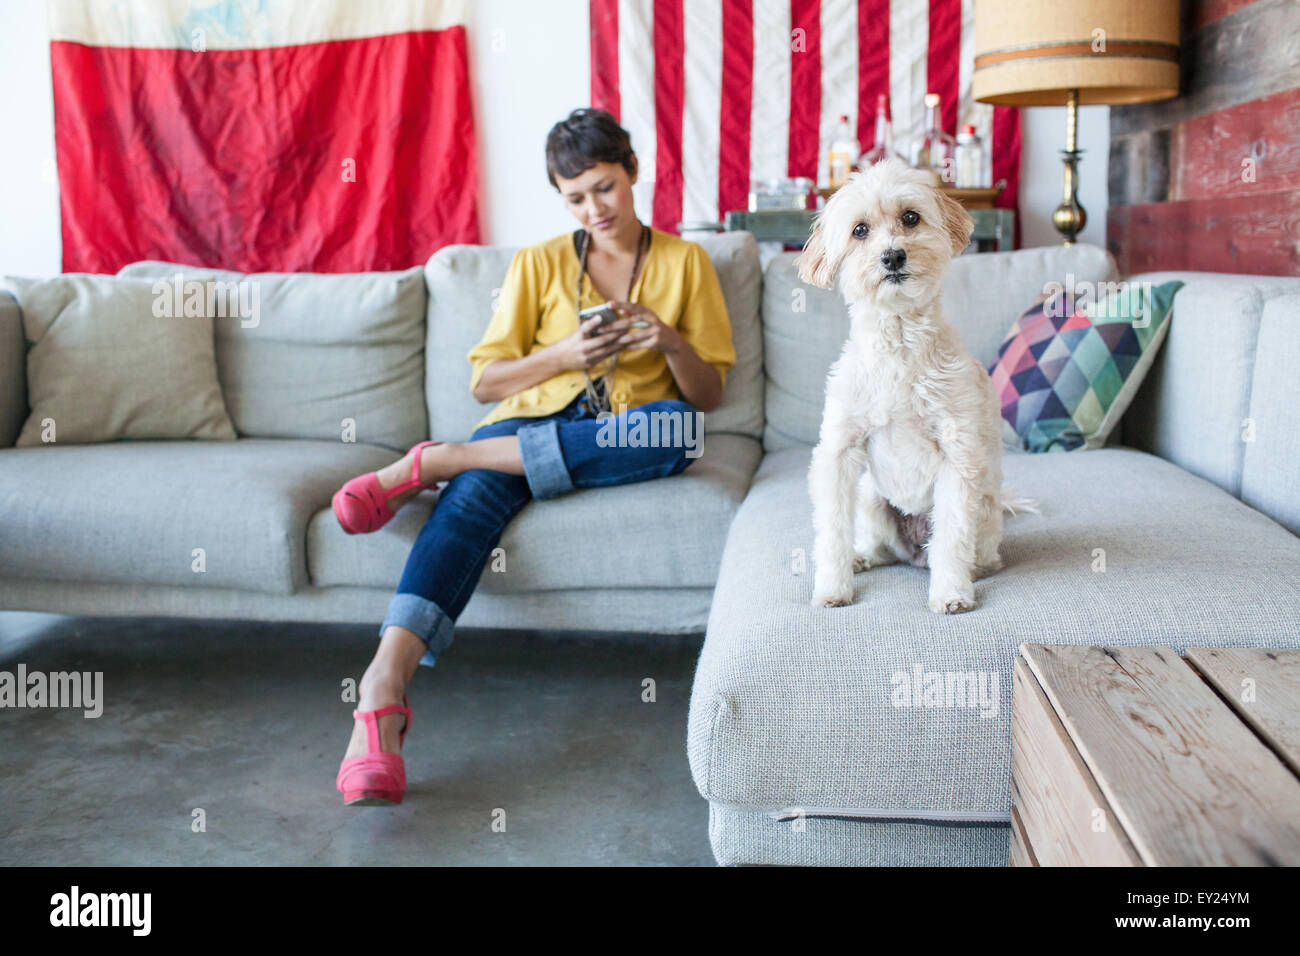 Portrait of young woman using smartphone and cute dog on living room sofa - Stock Image